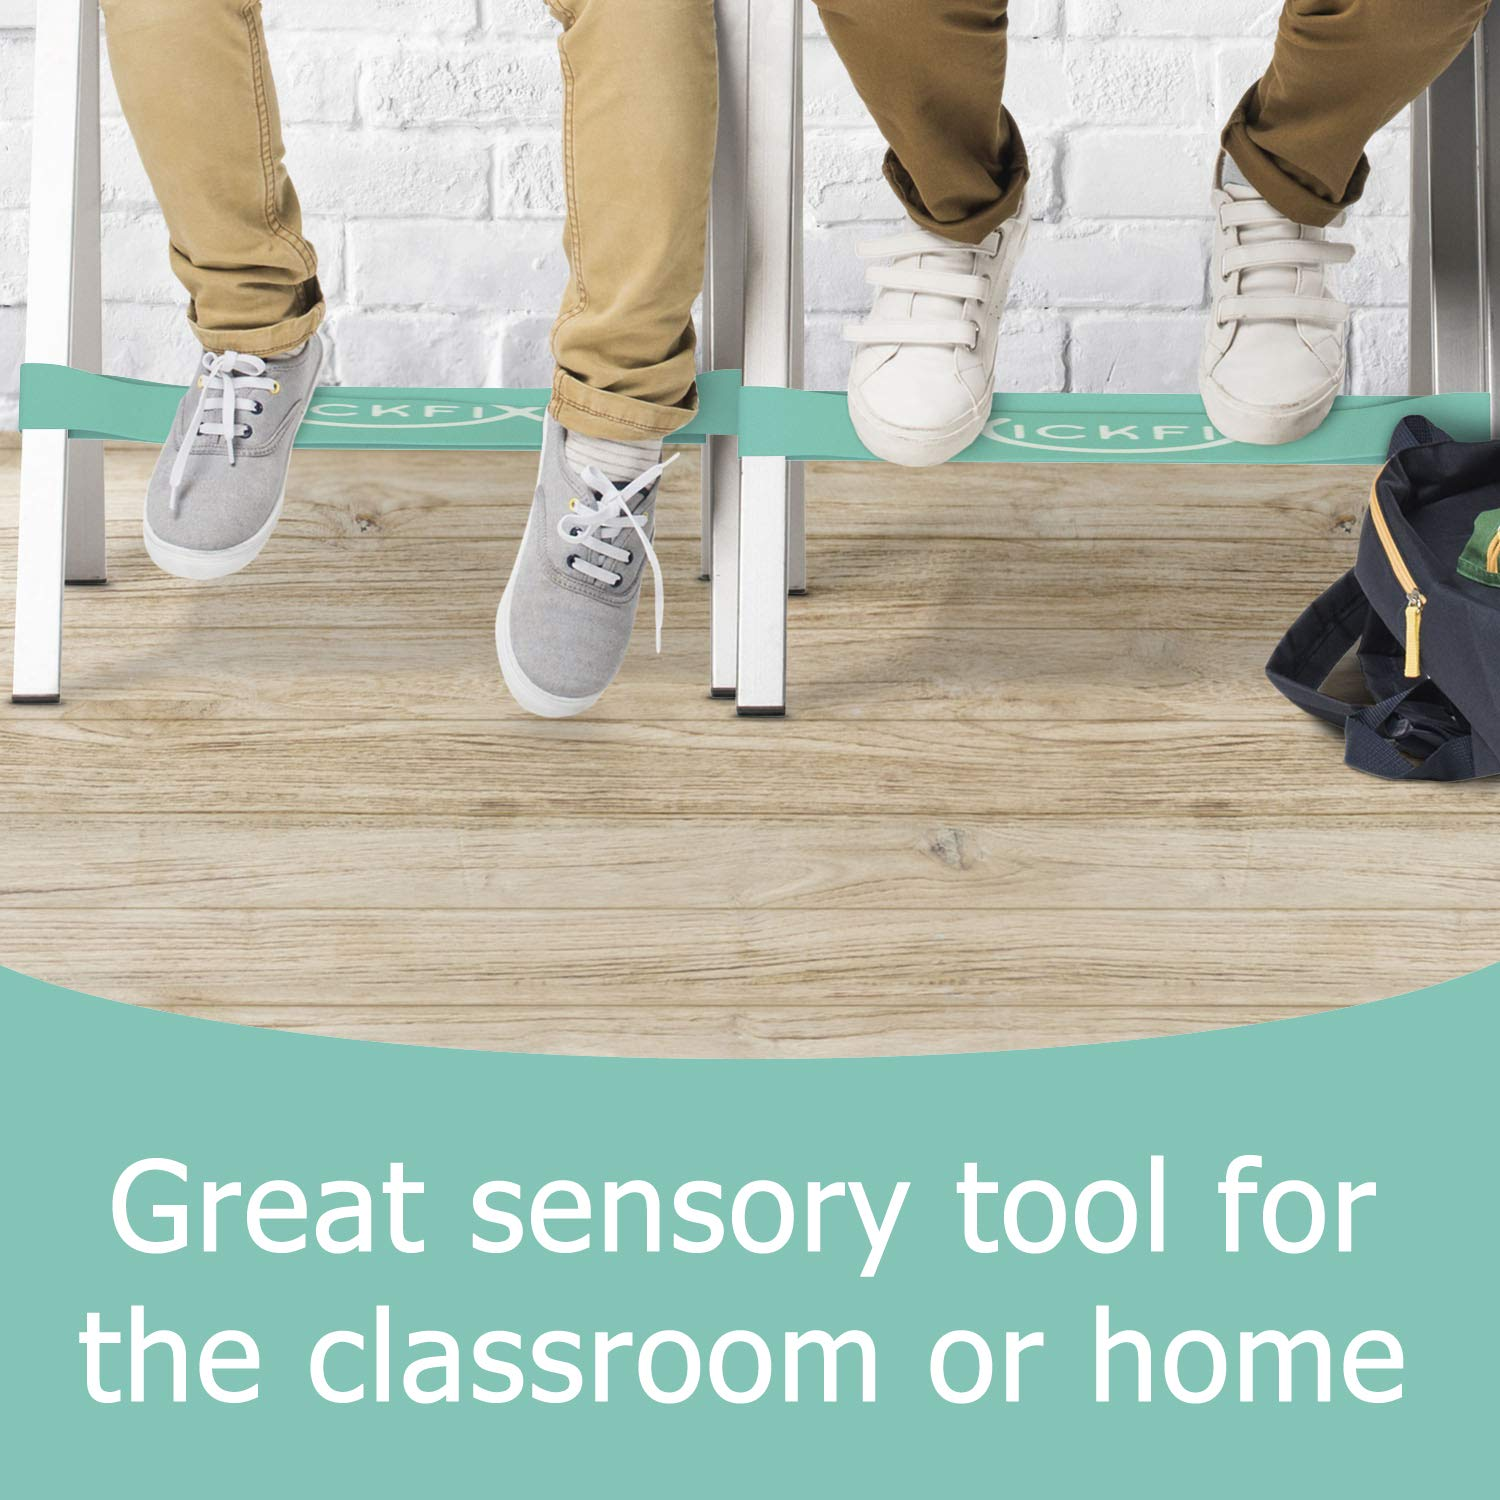 Fidget Chair Bands for Kids - Flexible Seating Classroom Furniture Option for Kids with Fidgety Feet - Bouncy Foot Bands for the Desk or Chair for Students with ADHD, Autism, or Sensory Needs by Kickfix (Image #2)